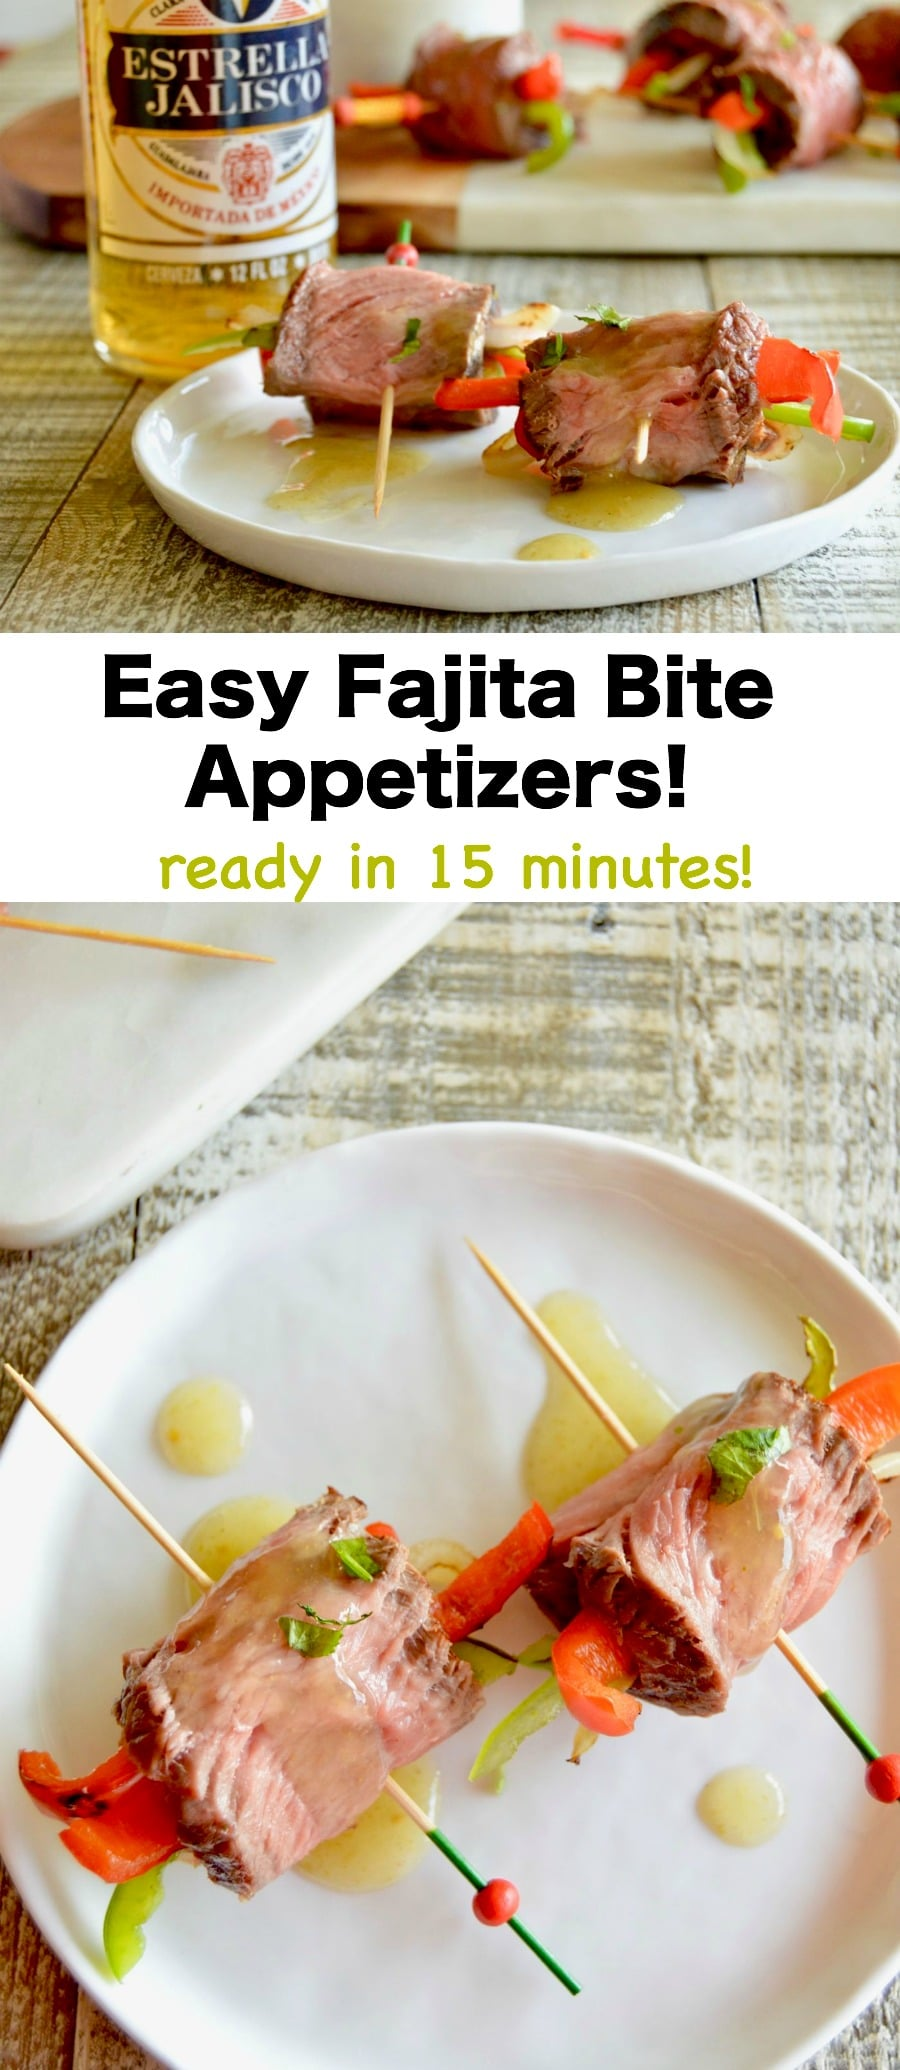 Easy Fajita Bite Appetizers are made with tender grilled steak, with softened peppers and onions all rolled into a bite sized treat.  Served with a simple salsa for maximum burst of flavor ready in less than 30 minutes for easy entertaining.